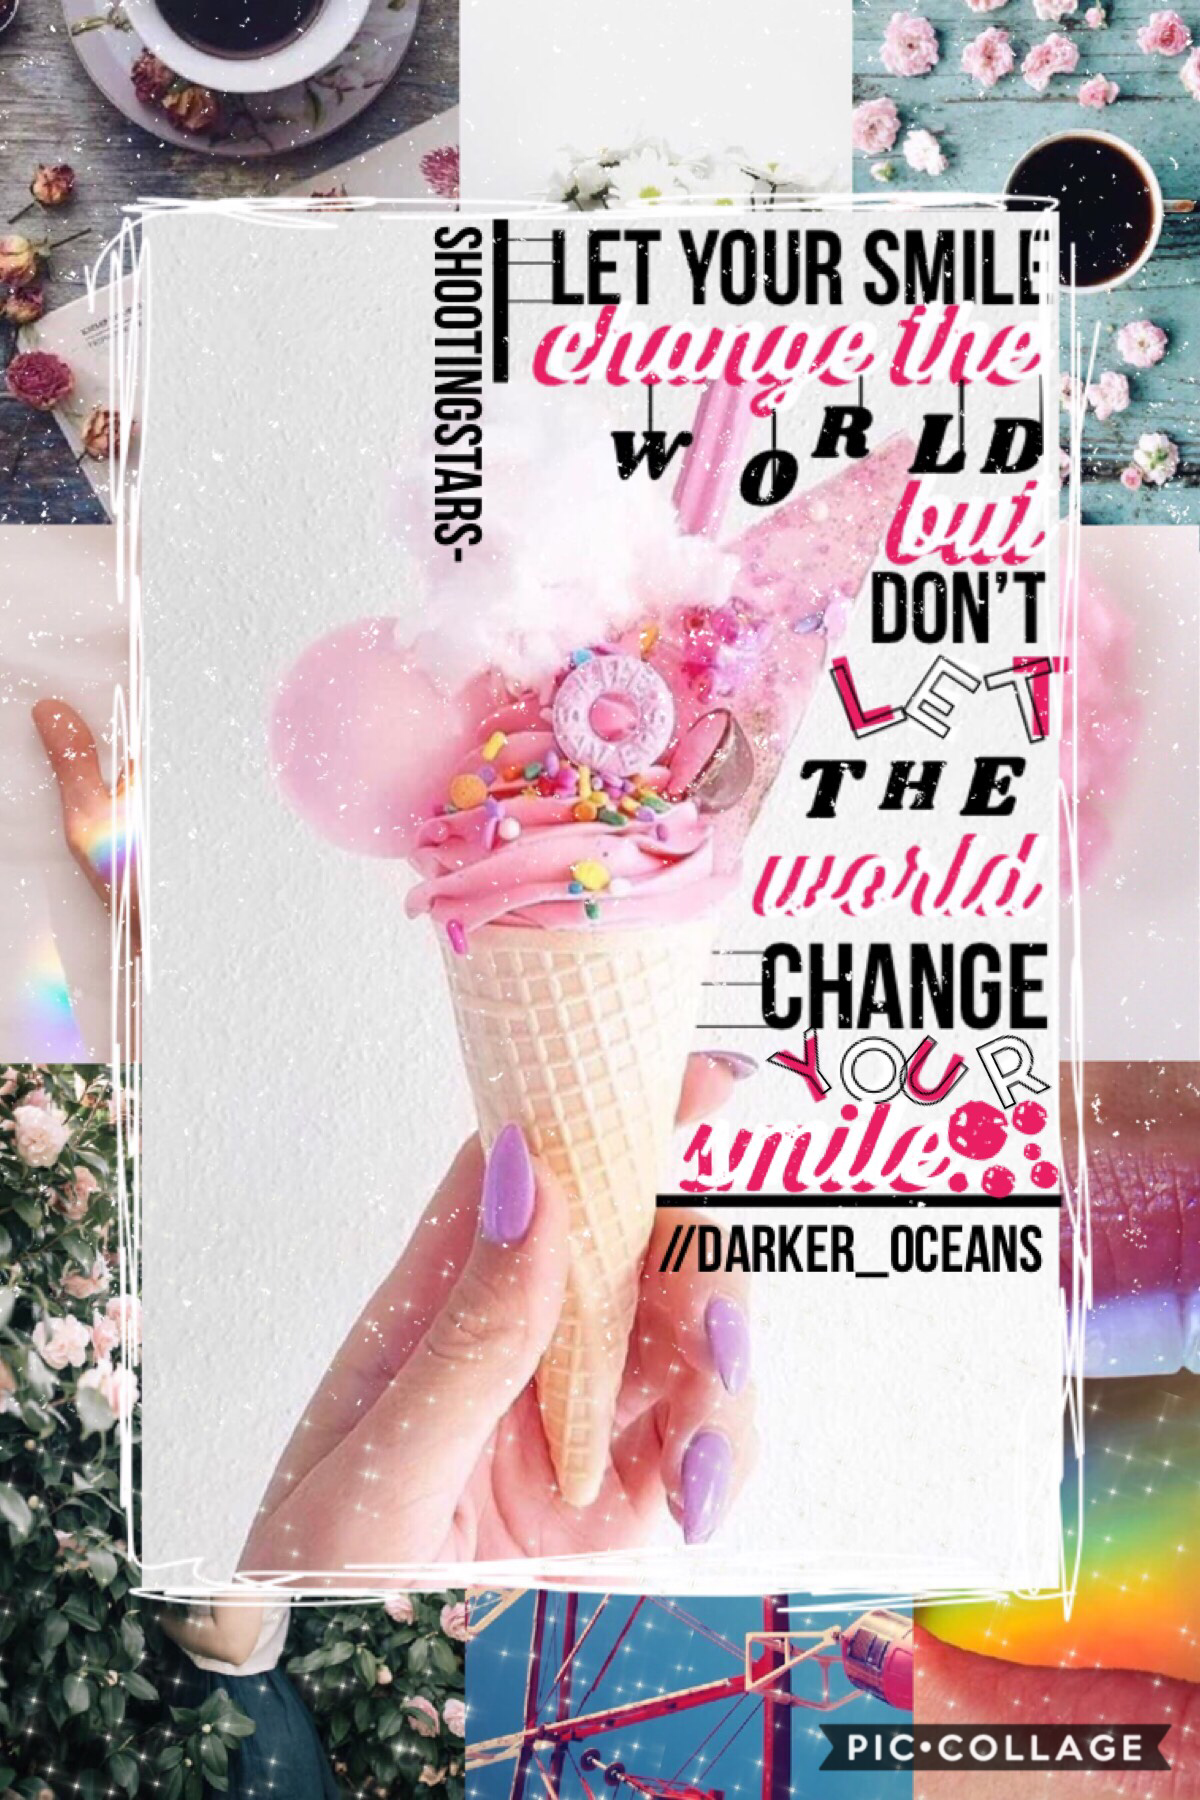 🍦{35/43}Collab with the cool (Tap)🍦 Darker_Oceans! Go follow em! OMG I have this new individual style that I am planning to show you guys but that's in a few months, it's inspired by the FANTASTIC AMAZING SUPERCALIFRAGILISTIC meandmeonly!!! QOTD in commen